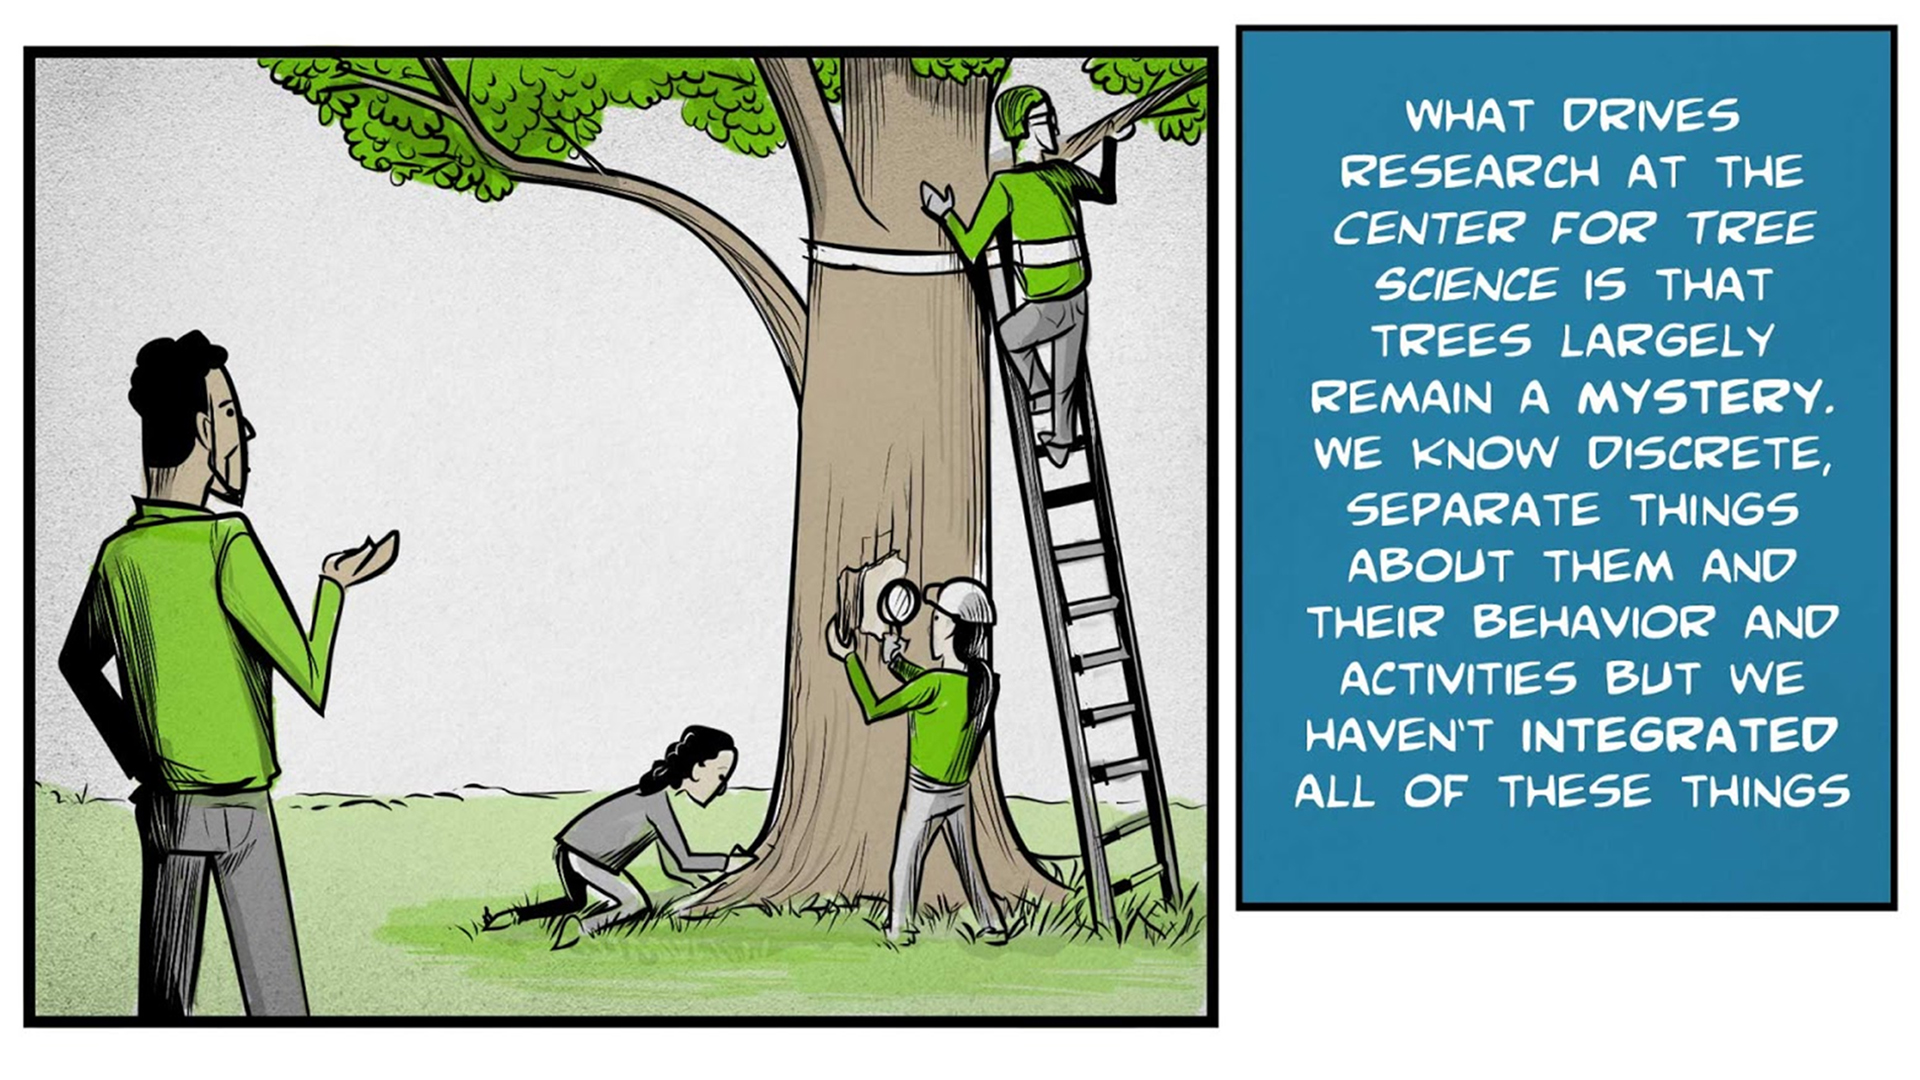 """Felix, the narrator, says, """"What drives research at the Center for Tree Science is that trees largely remain a mystery. We know discrete, separate things about them and their behavior and activities but we haven't integrated all of these things."""" He stands and watches as three people take measurements of a tree. A woman kneels on the ground, looking at the roots. Another is using a magnifying glass to look at the bark. Someone else is high on a ladder, looking at a branch."""